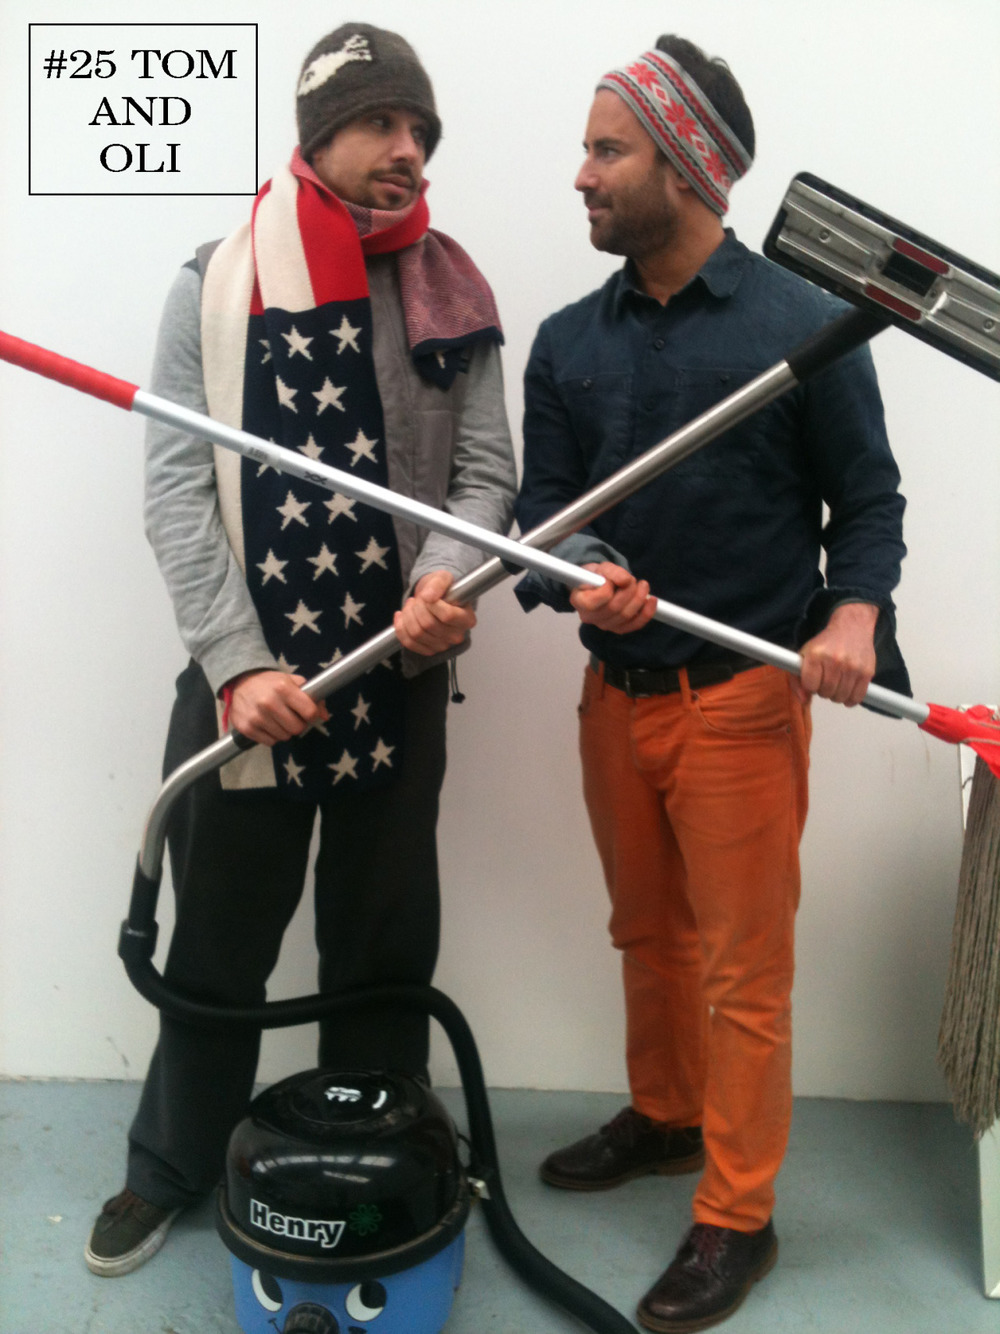 With 2013 in full swing, Tom and Oli thought it was time to clean up their act. Channelling all things Americana the duo pair stars and stripes with denim and casual knitwear for a transatlantic look they dub 'Bruce Springclean and Musty Springfield'. We thought their new years resolution might be to appear on the Fash Off less frequently but this look is undoubtedly a sign of things to come. Ah well, maybe they're just born to pun… Tom Bodywarmer: Wrangler Top: Nike Trousers: Sky Jeans Shoes: Vans Scarf: Stolen Christmas present. Henry: Folk's own Oli Snowboard band: Superdry Blue denim shirt: Flying Horse Jeans* Orange Jeans: Zara Socks: Thomas Pink Mop: Folk's own Purple patent shoes : Ted Baker